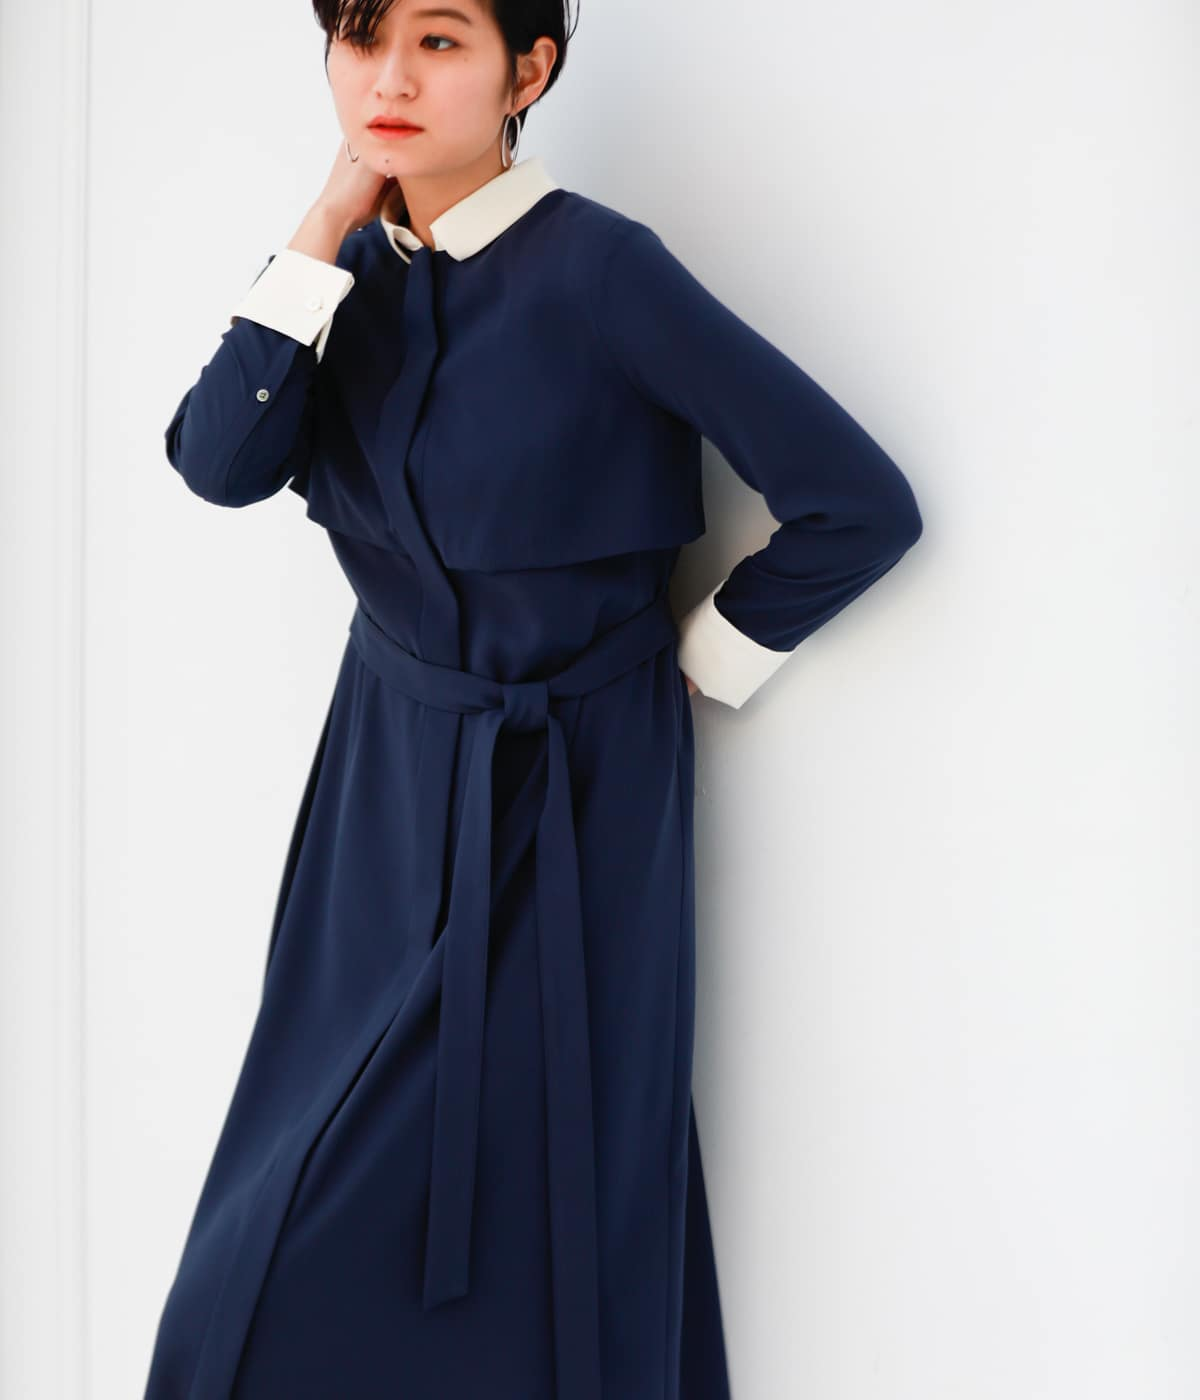 LITTLE NAVY DRESS collection/クレリックドレス